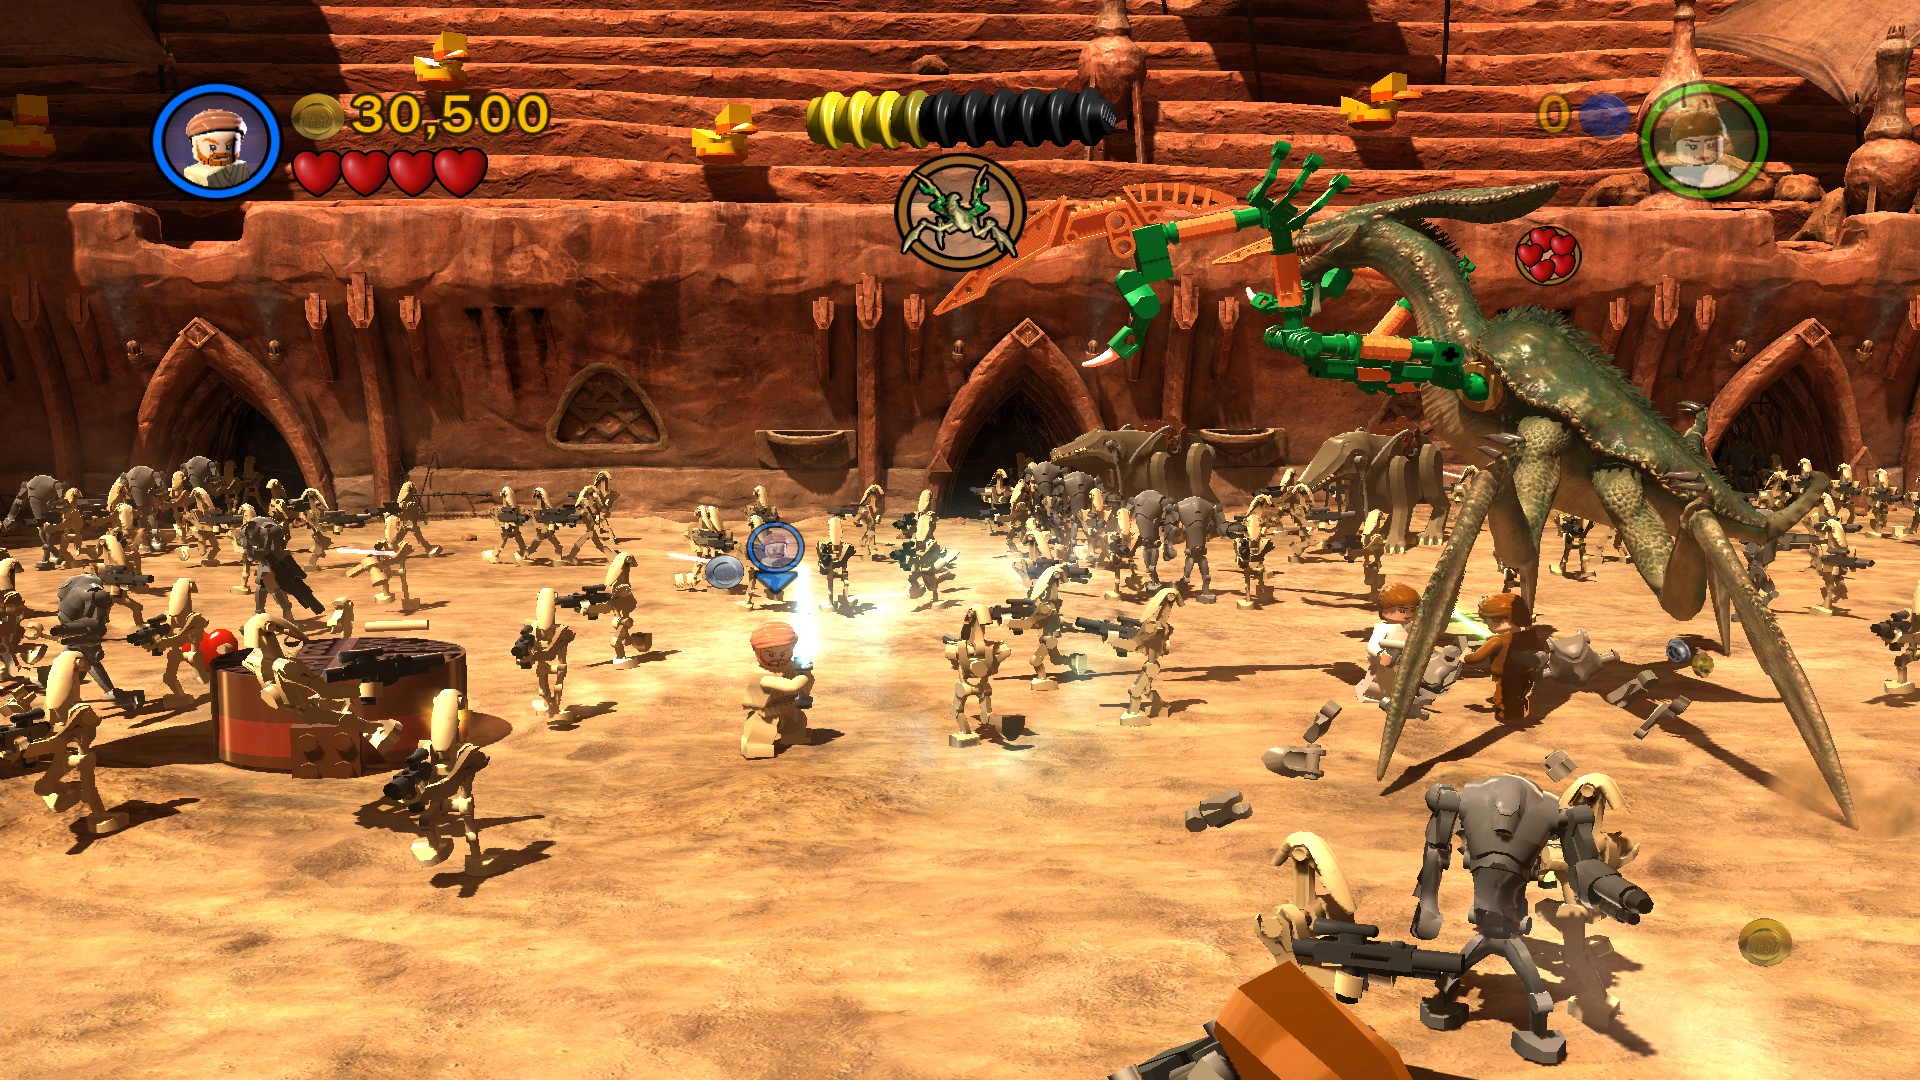 LEGO Star Wars III - The Clone Wars screenshot